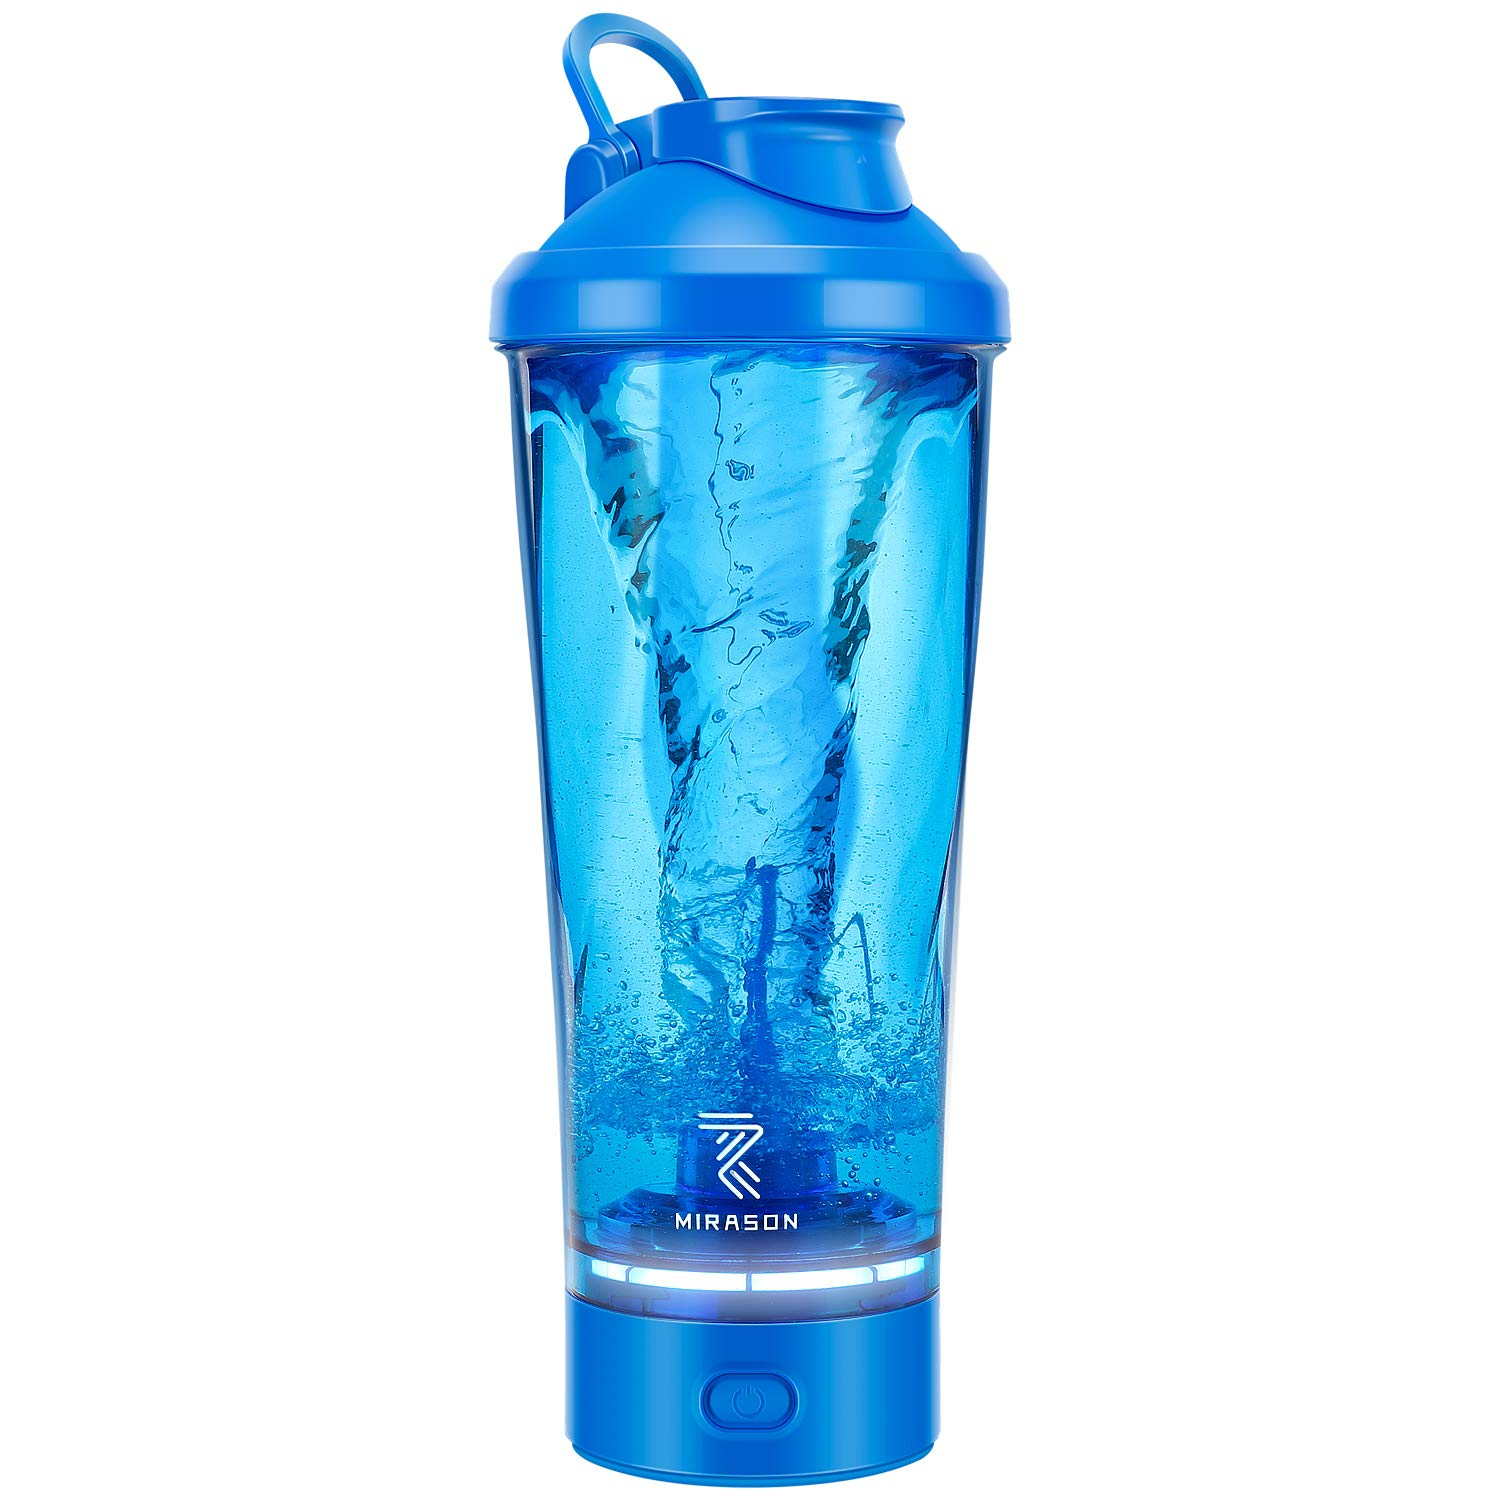 MIRASON Electric Protein Shaker Bottle 24 Ounce USB Rechargeable Automatic Blender Bottle Mixer Cup for Protein Shakes Made with Tritan BPA Free with Wide Mouth Loop Top Lid, Blue